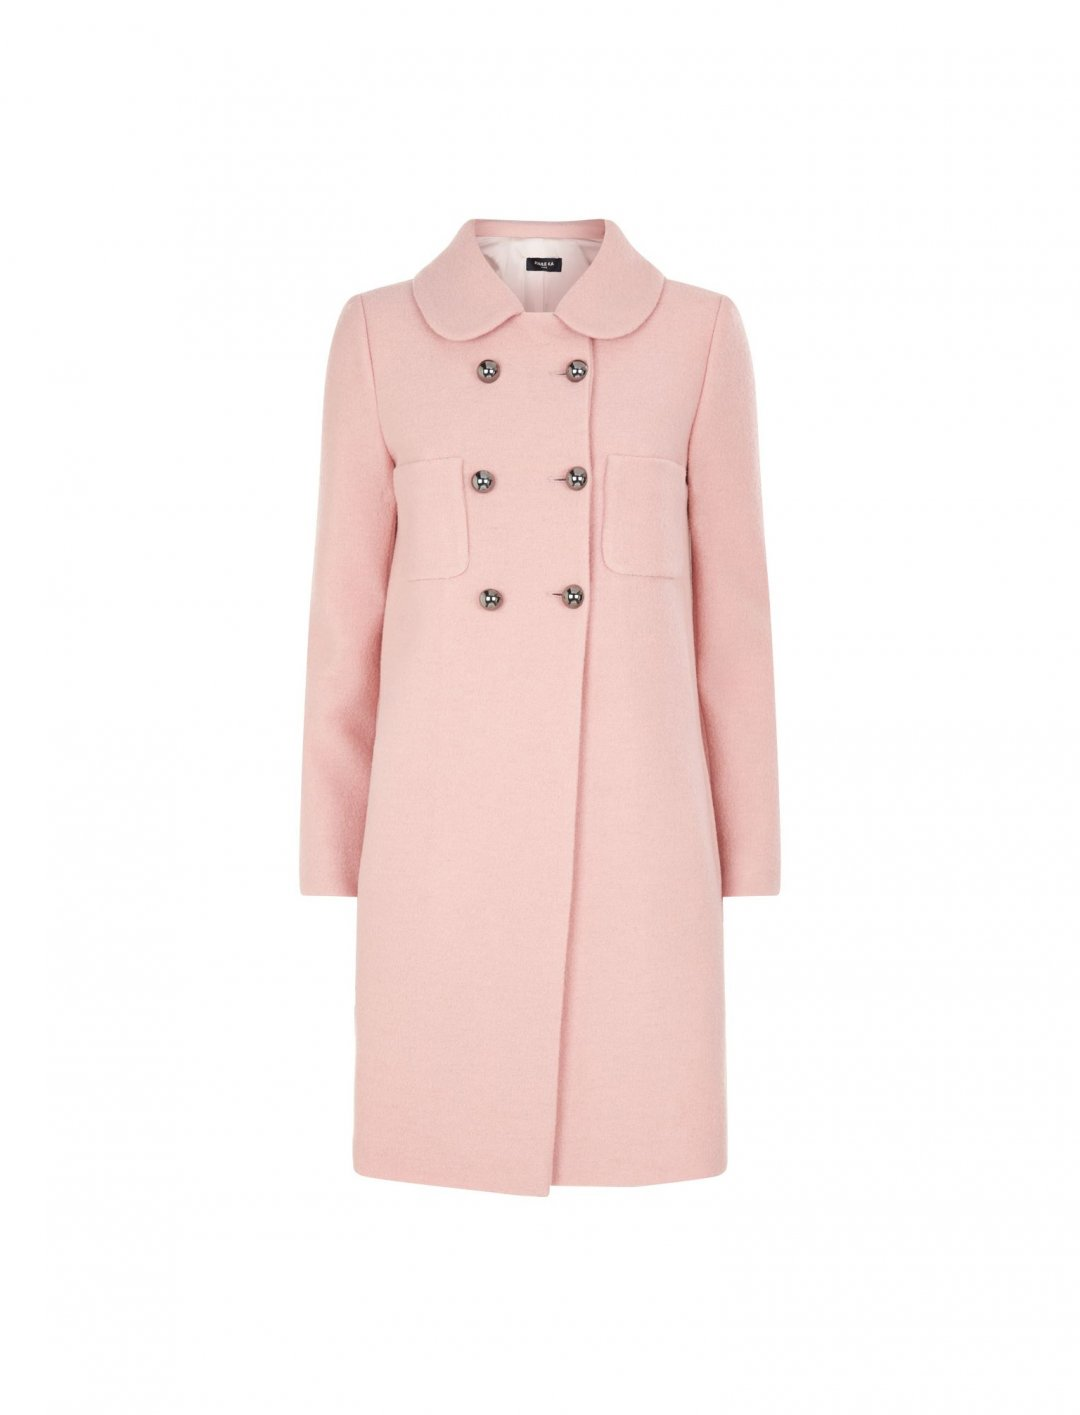 "Camila Cabello's Coat {""id"":5,""product_section_id"":1,""name"":""Clothing"",""order"":5} Paule Ka"